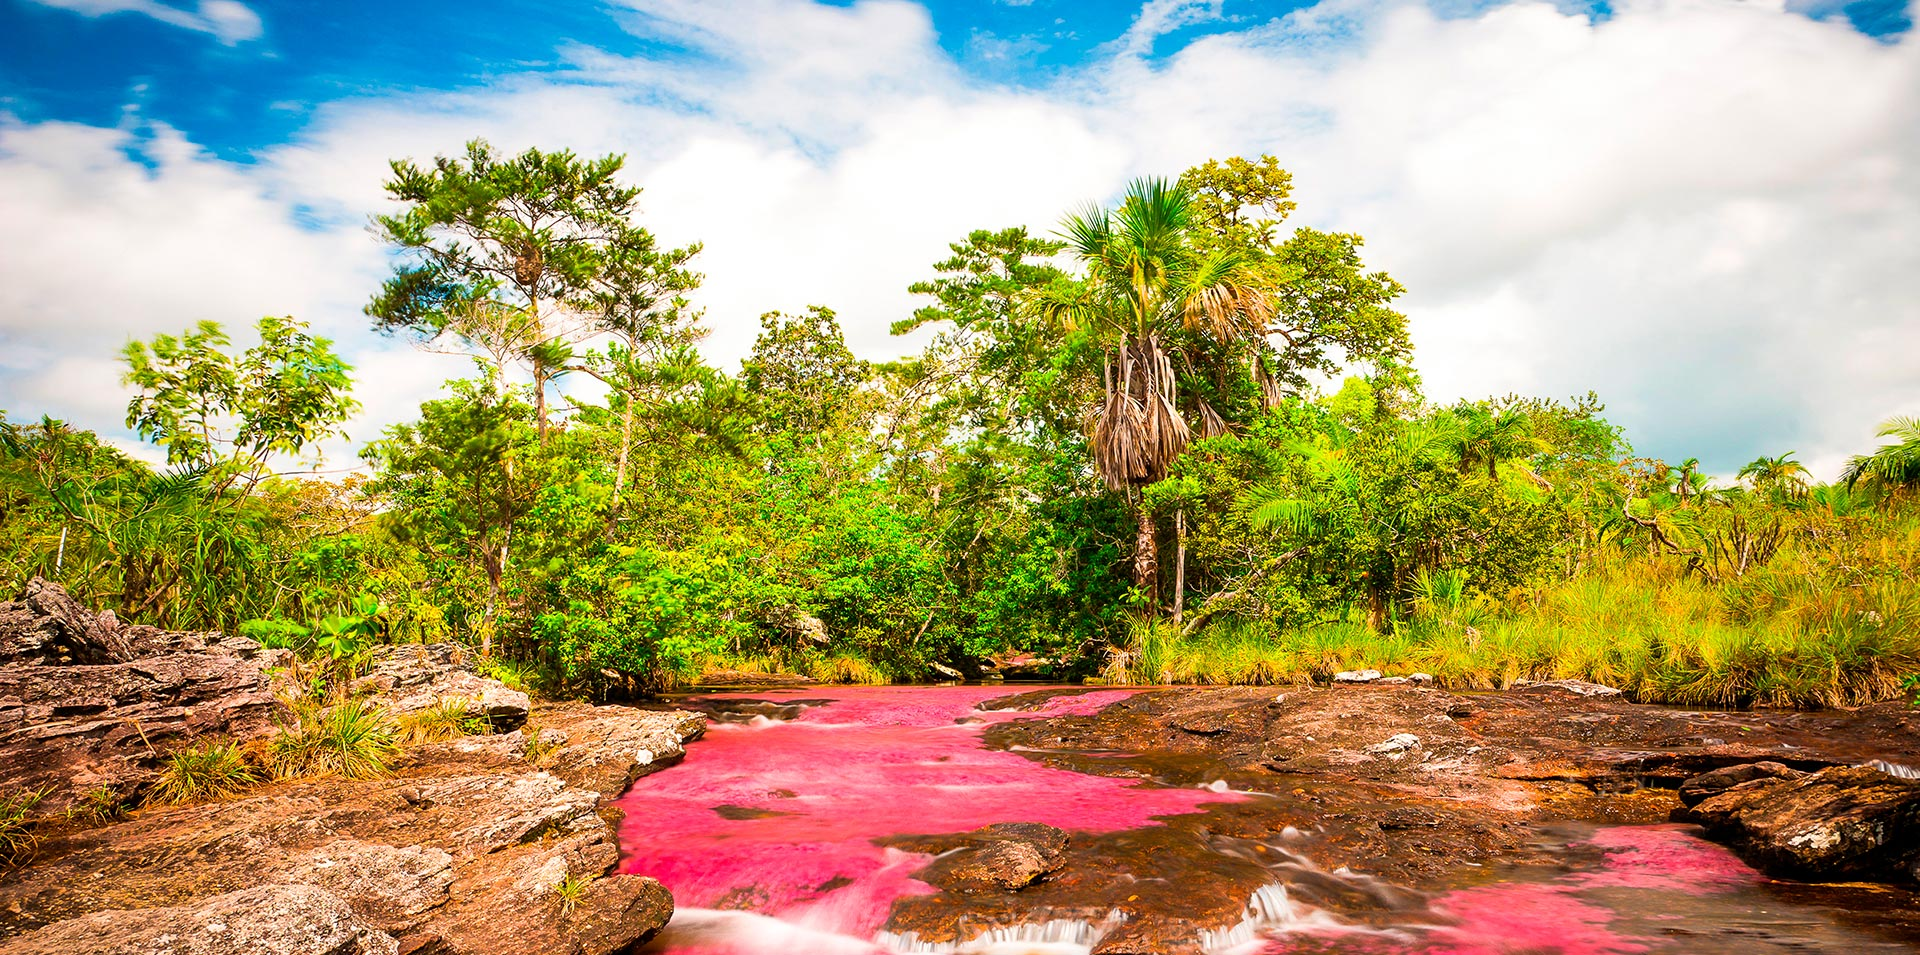 Colombia's River of the Seven Colors in full bloom